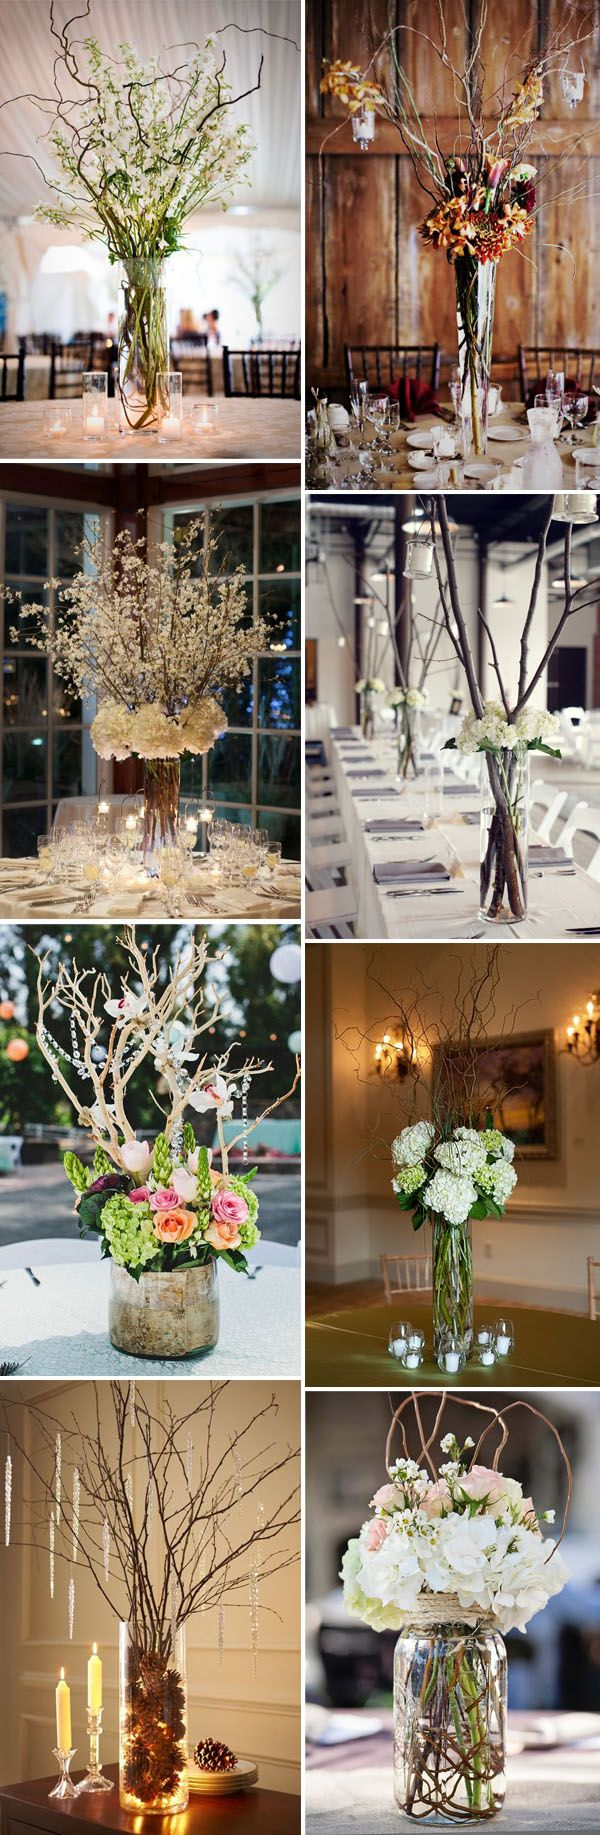 28 Creative & Budget-friendly DIY Wedding Decoration Ideas ...